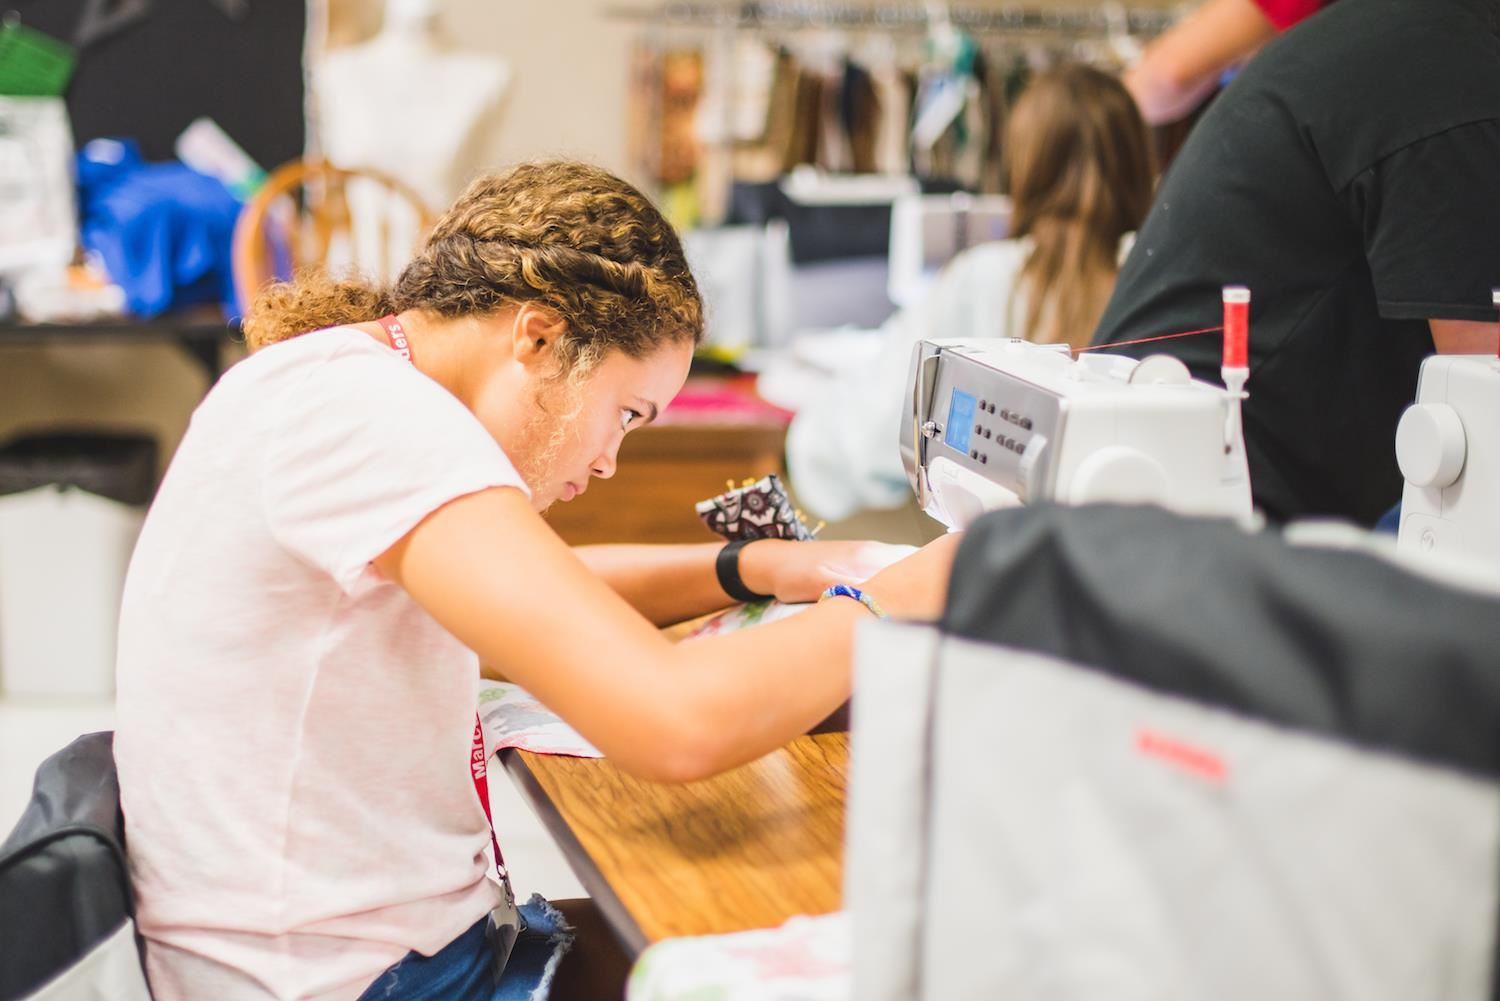 Student sews stocking with sewing machine